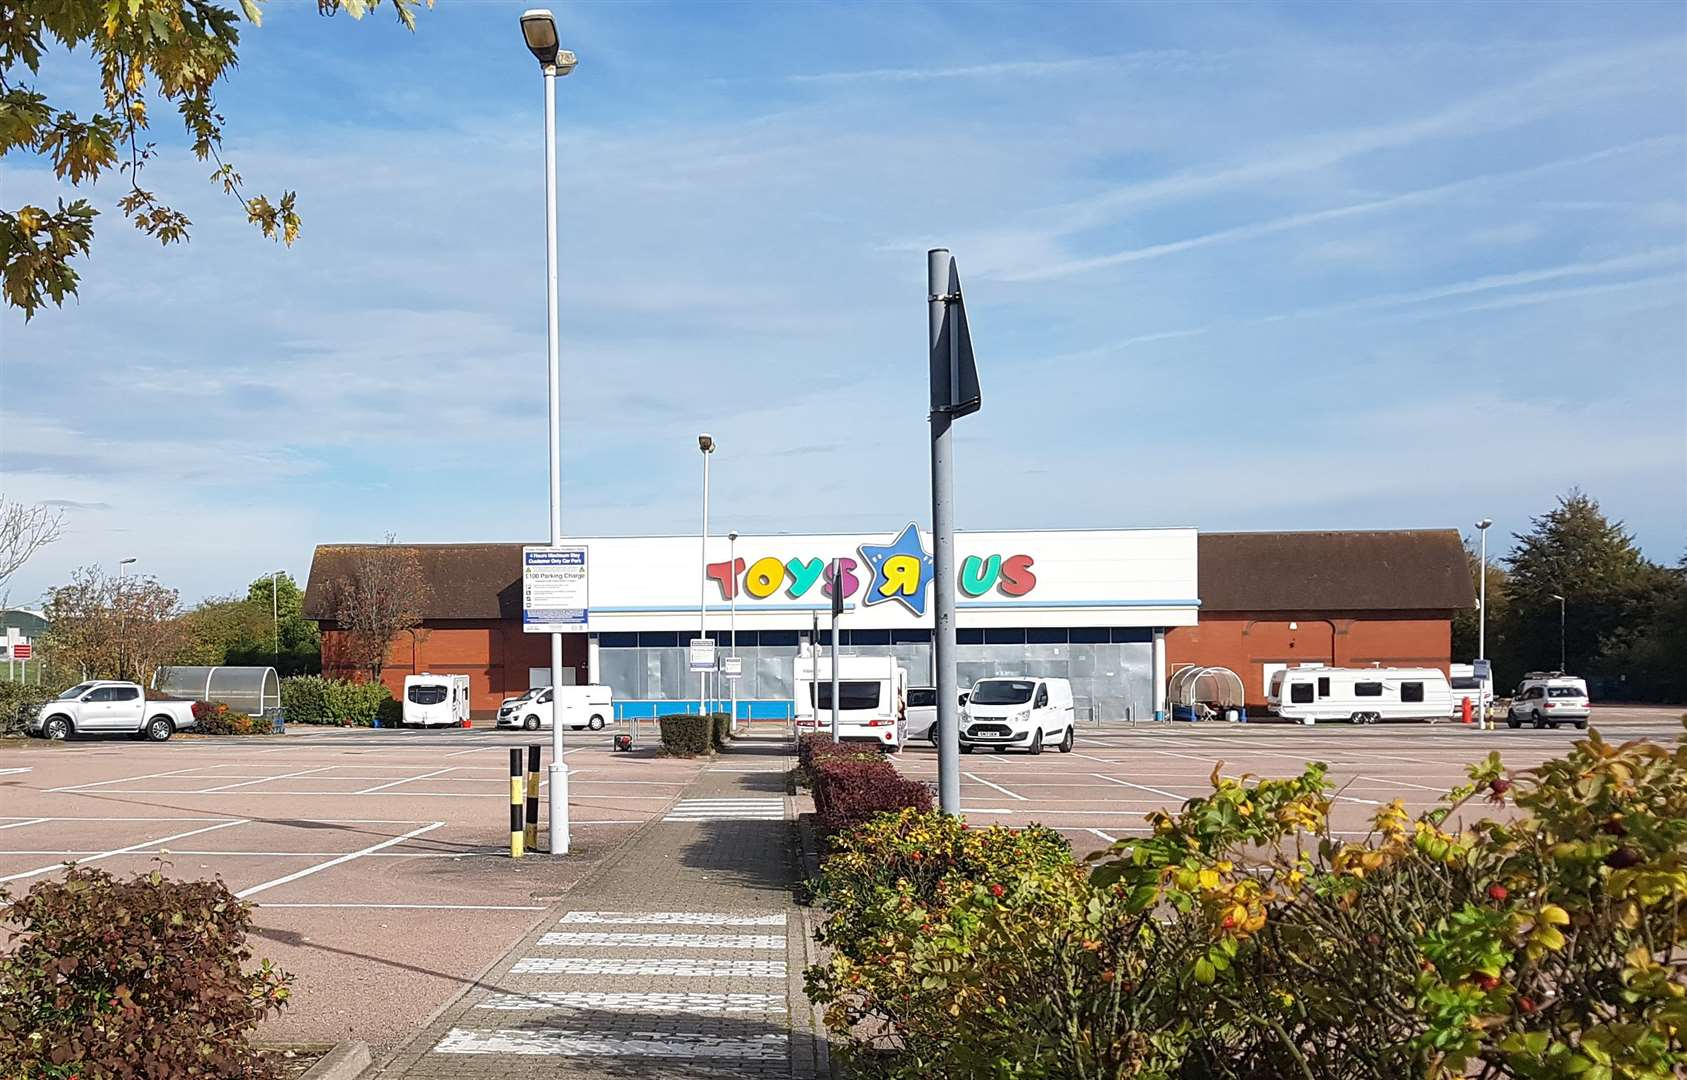 Travellers camped at Horsted Retail Park